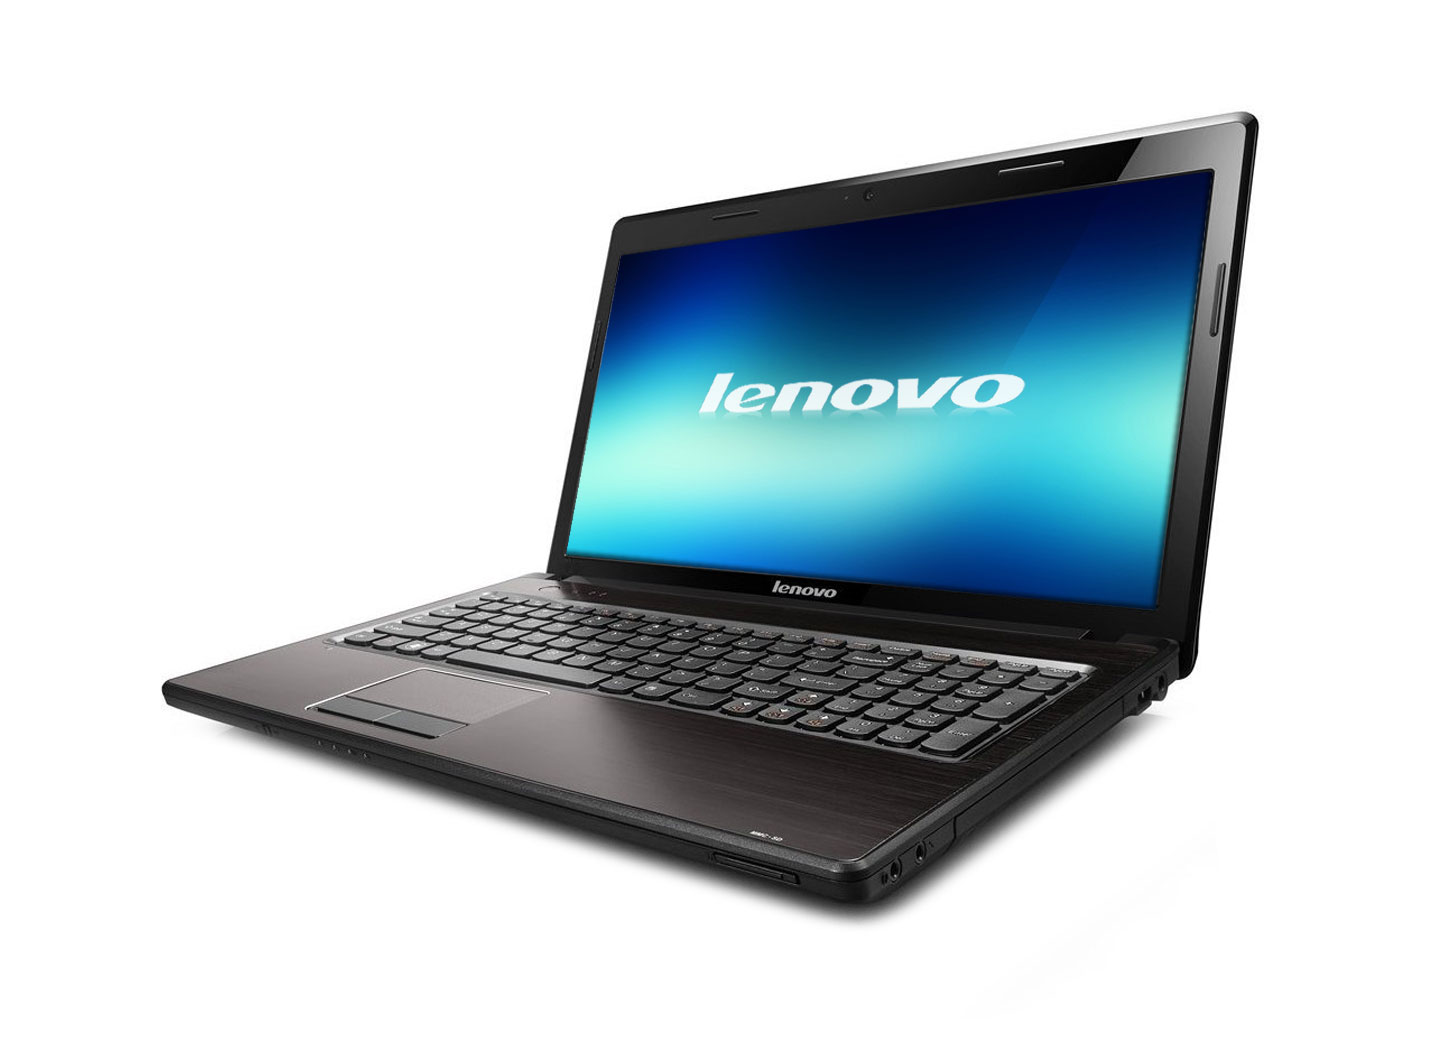 how to download apps on lenovo laptop